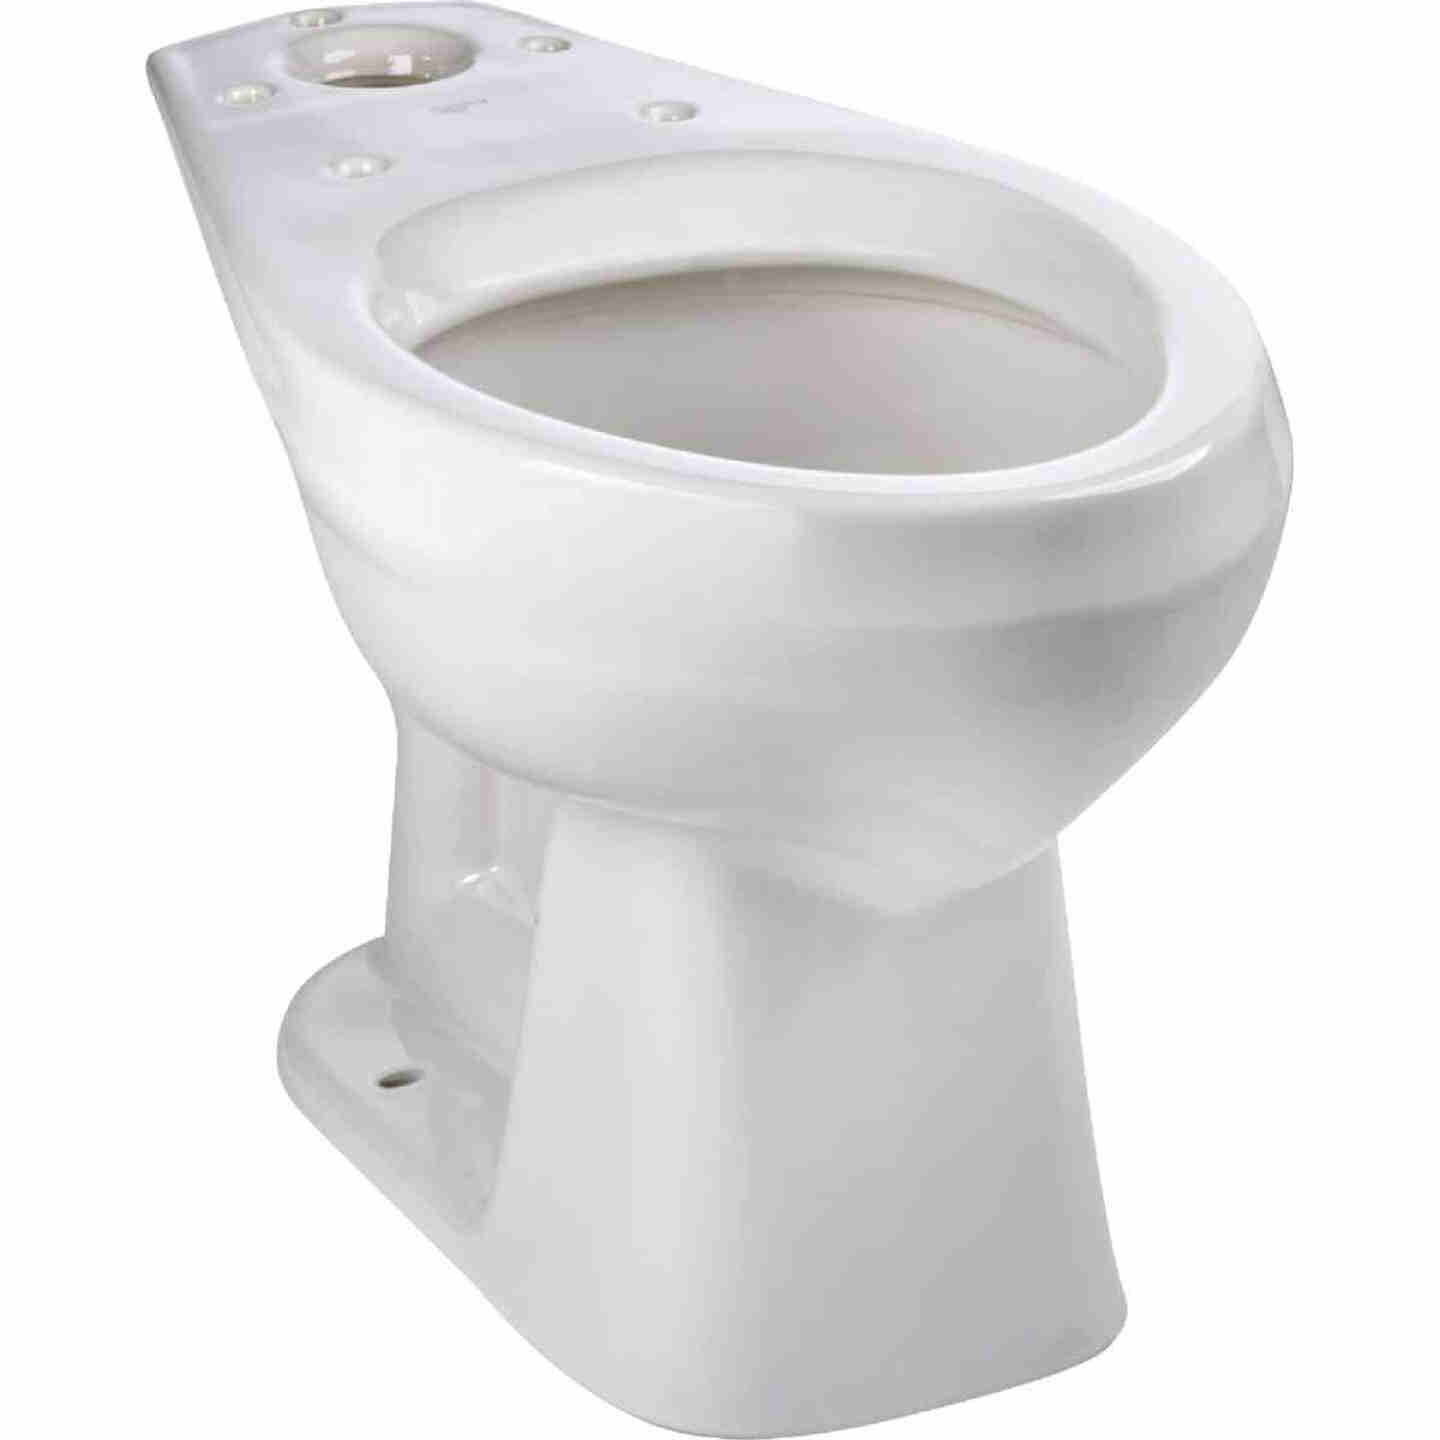 Mansfield Pro-Fit 3 SmartHeight White Elongated Bowl 1.6 GPF Complete Toilet Image 5